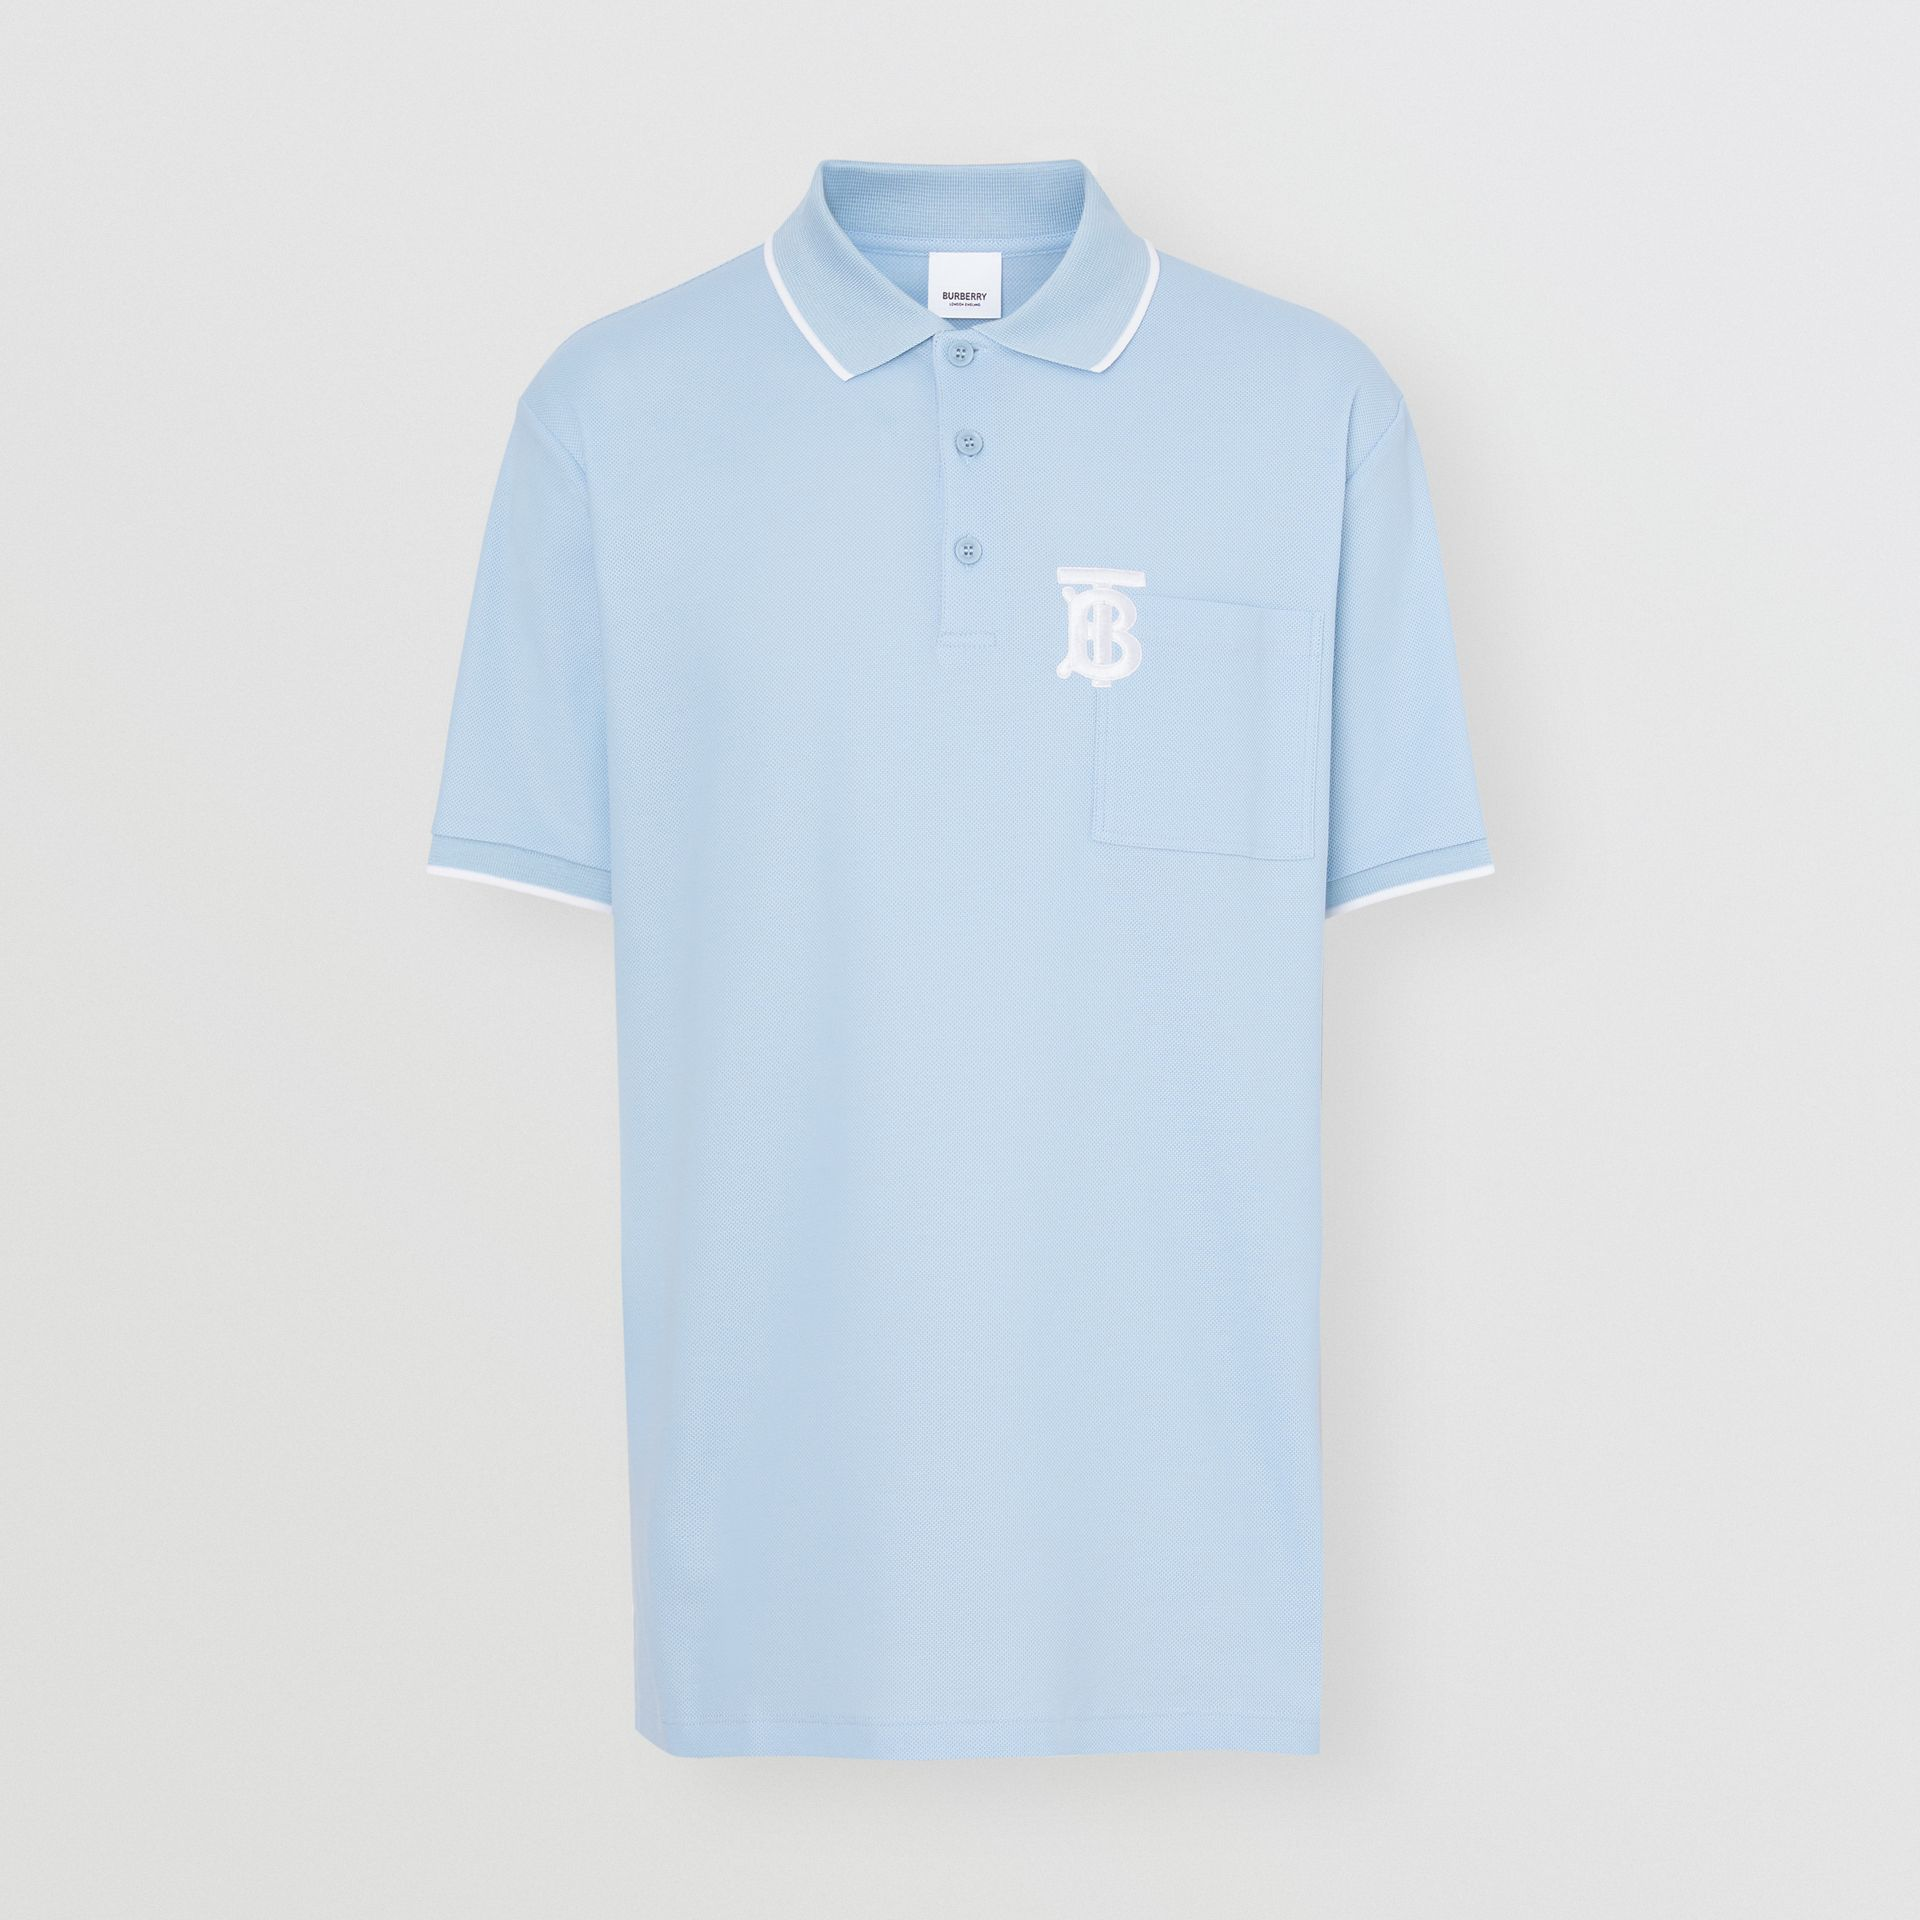 Monogram Motif Tipped Cotton Piqué Polo Shirt in Pale Blue - Men | Burberry - gallery image 3